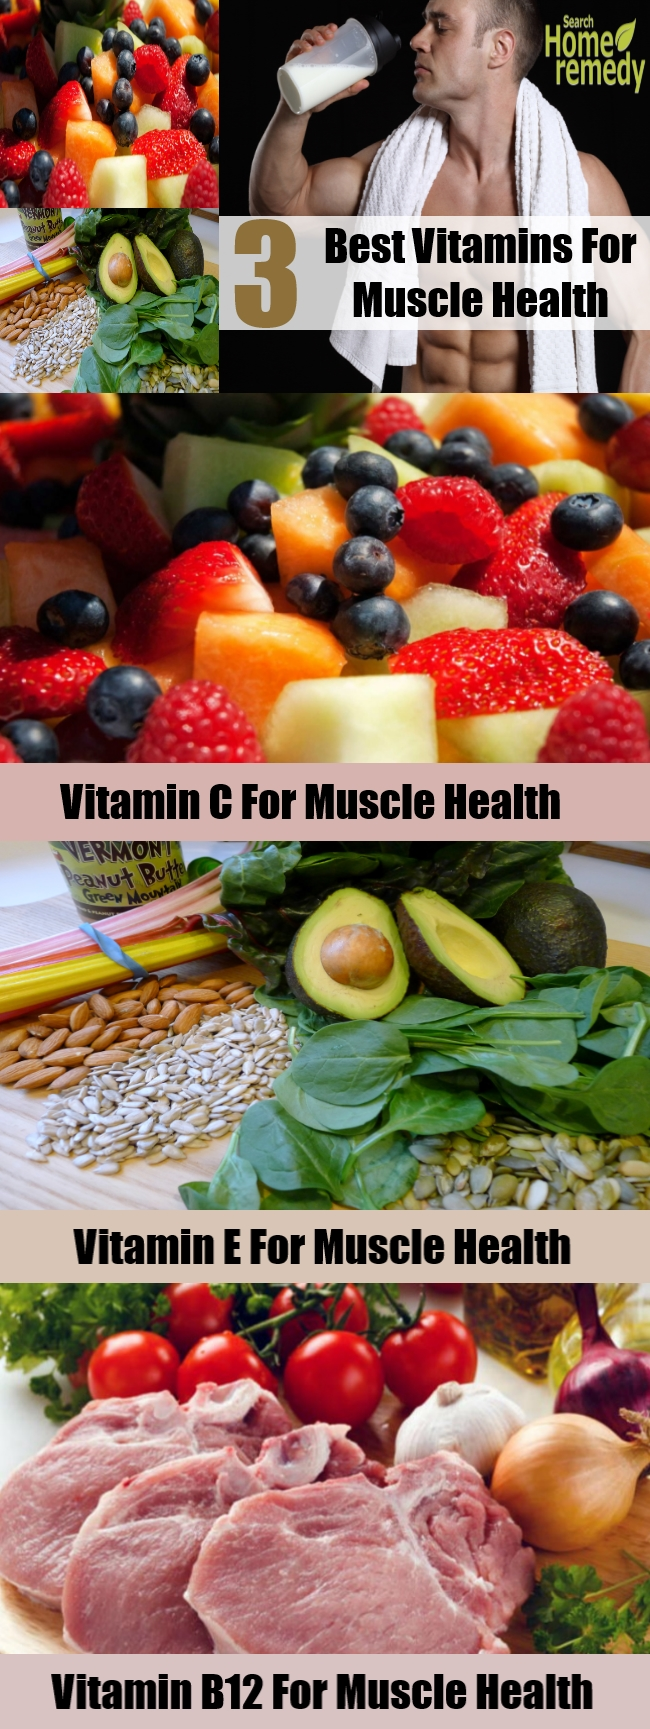 Three Best Vitamins For Muscle Health